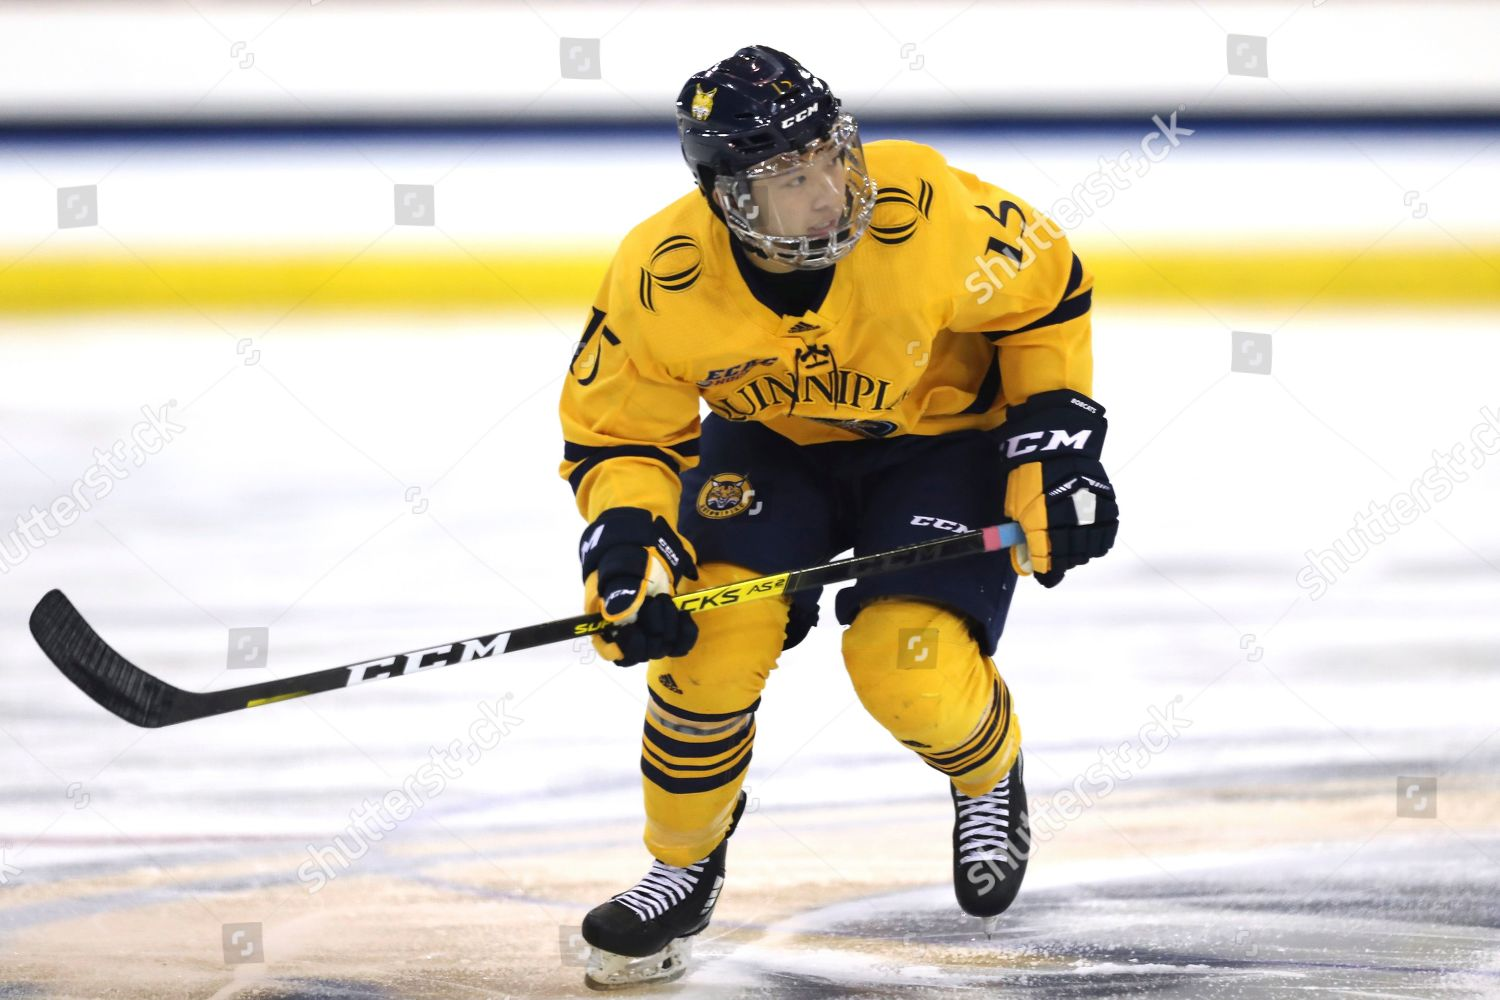 Quinnipiac Defenseman Jayden Lee 15 Skates Ice Editorial Stock Photo Stock Image Shutterstock Jayden lee's profile including the latest music, albums, songs, music videos and more updates. 2